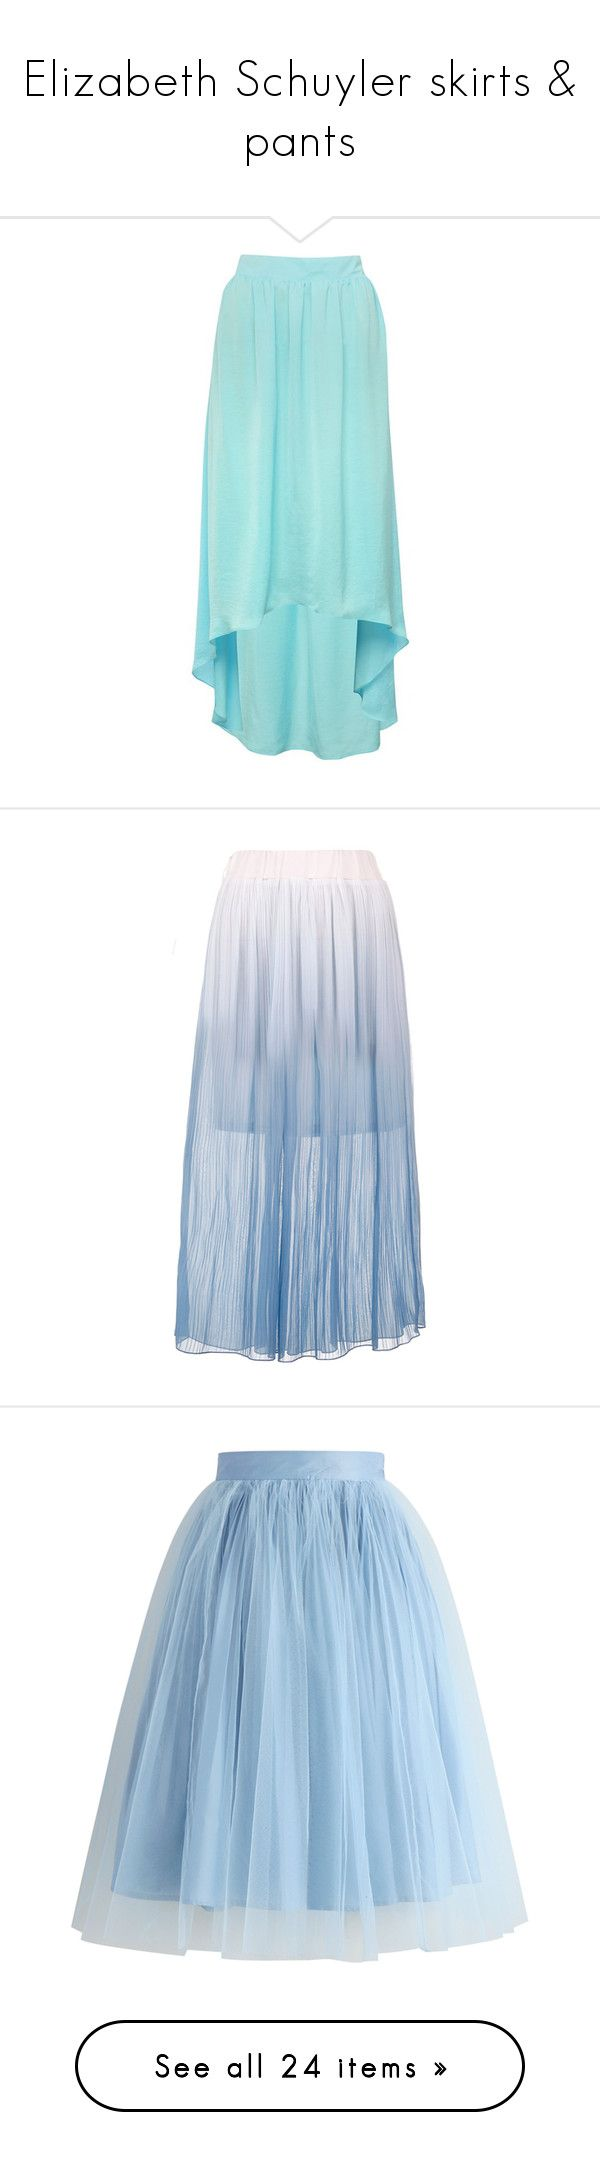 """Elizabeth Schuyler skirts & pants"" by silverbellatrix ❤ liked on Polyvore featuring skirts, bottoms, saias, long skirts, bright mint, hi lo skirt, long evening skirts, long high low skirt, high low skirt and long blue skirt"